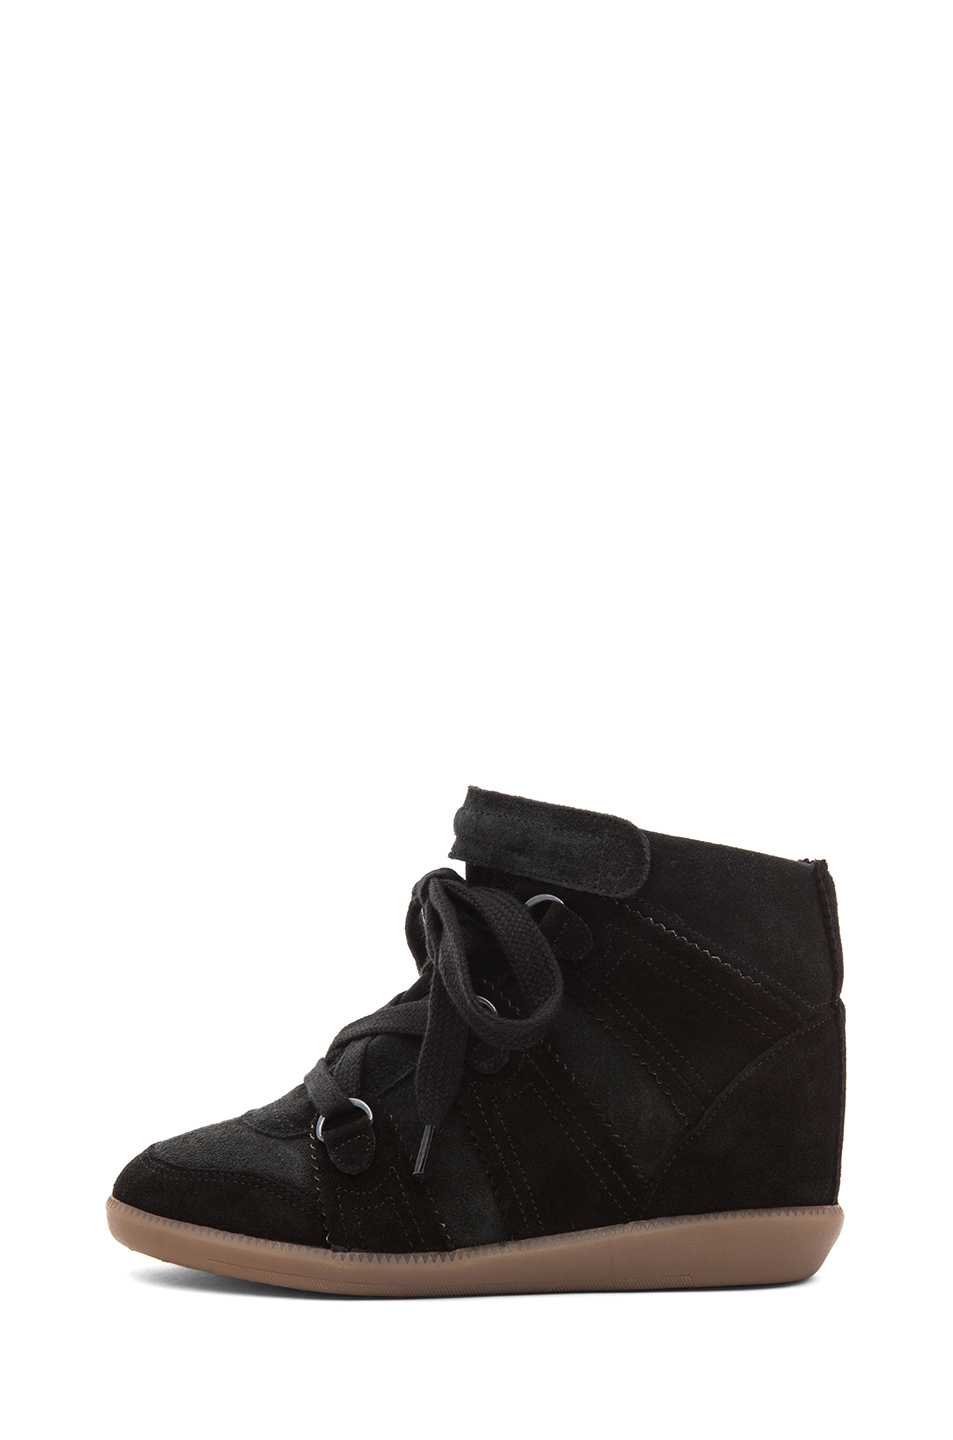 Isabel Marant|Bluebel Calfskin Velvet Leather Sneaker in Faded Black